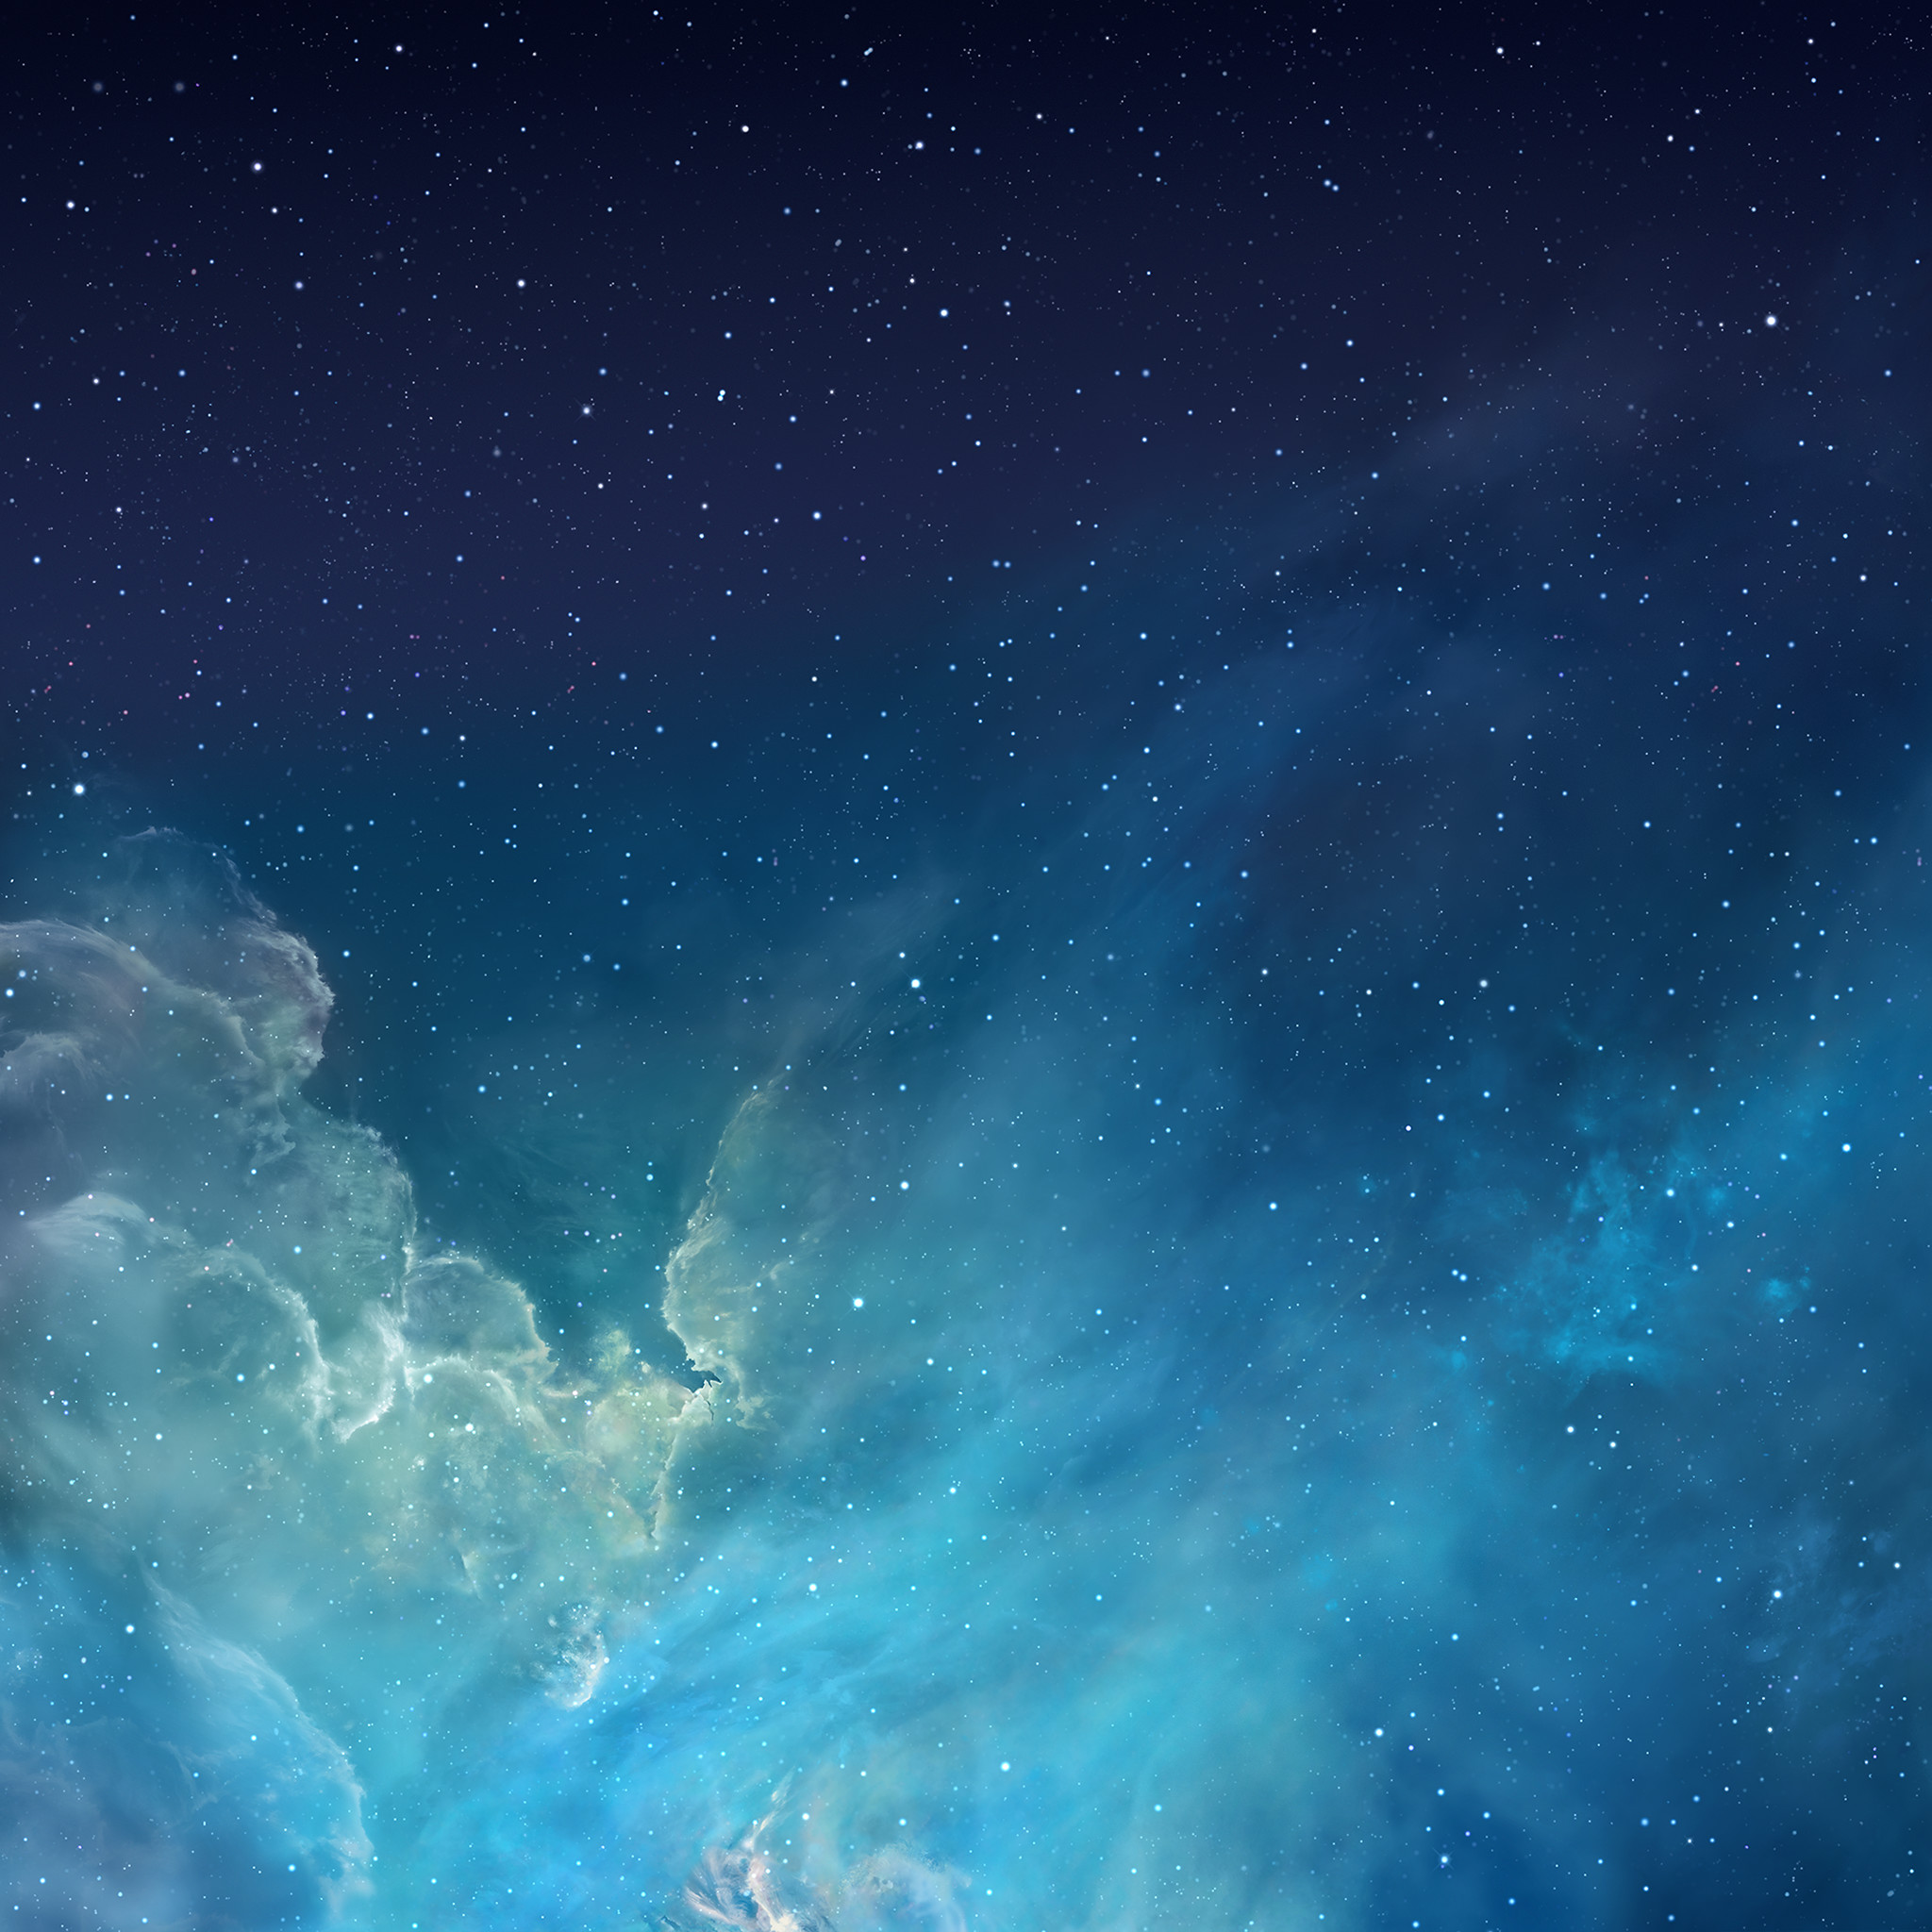 … Galaxy, Space, Sky, IOS 7 Wallpapers HD Desktop and